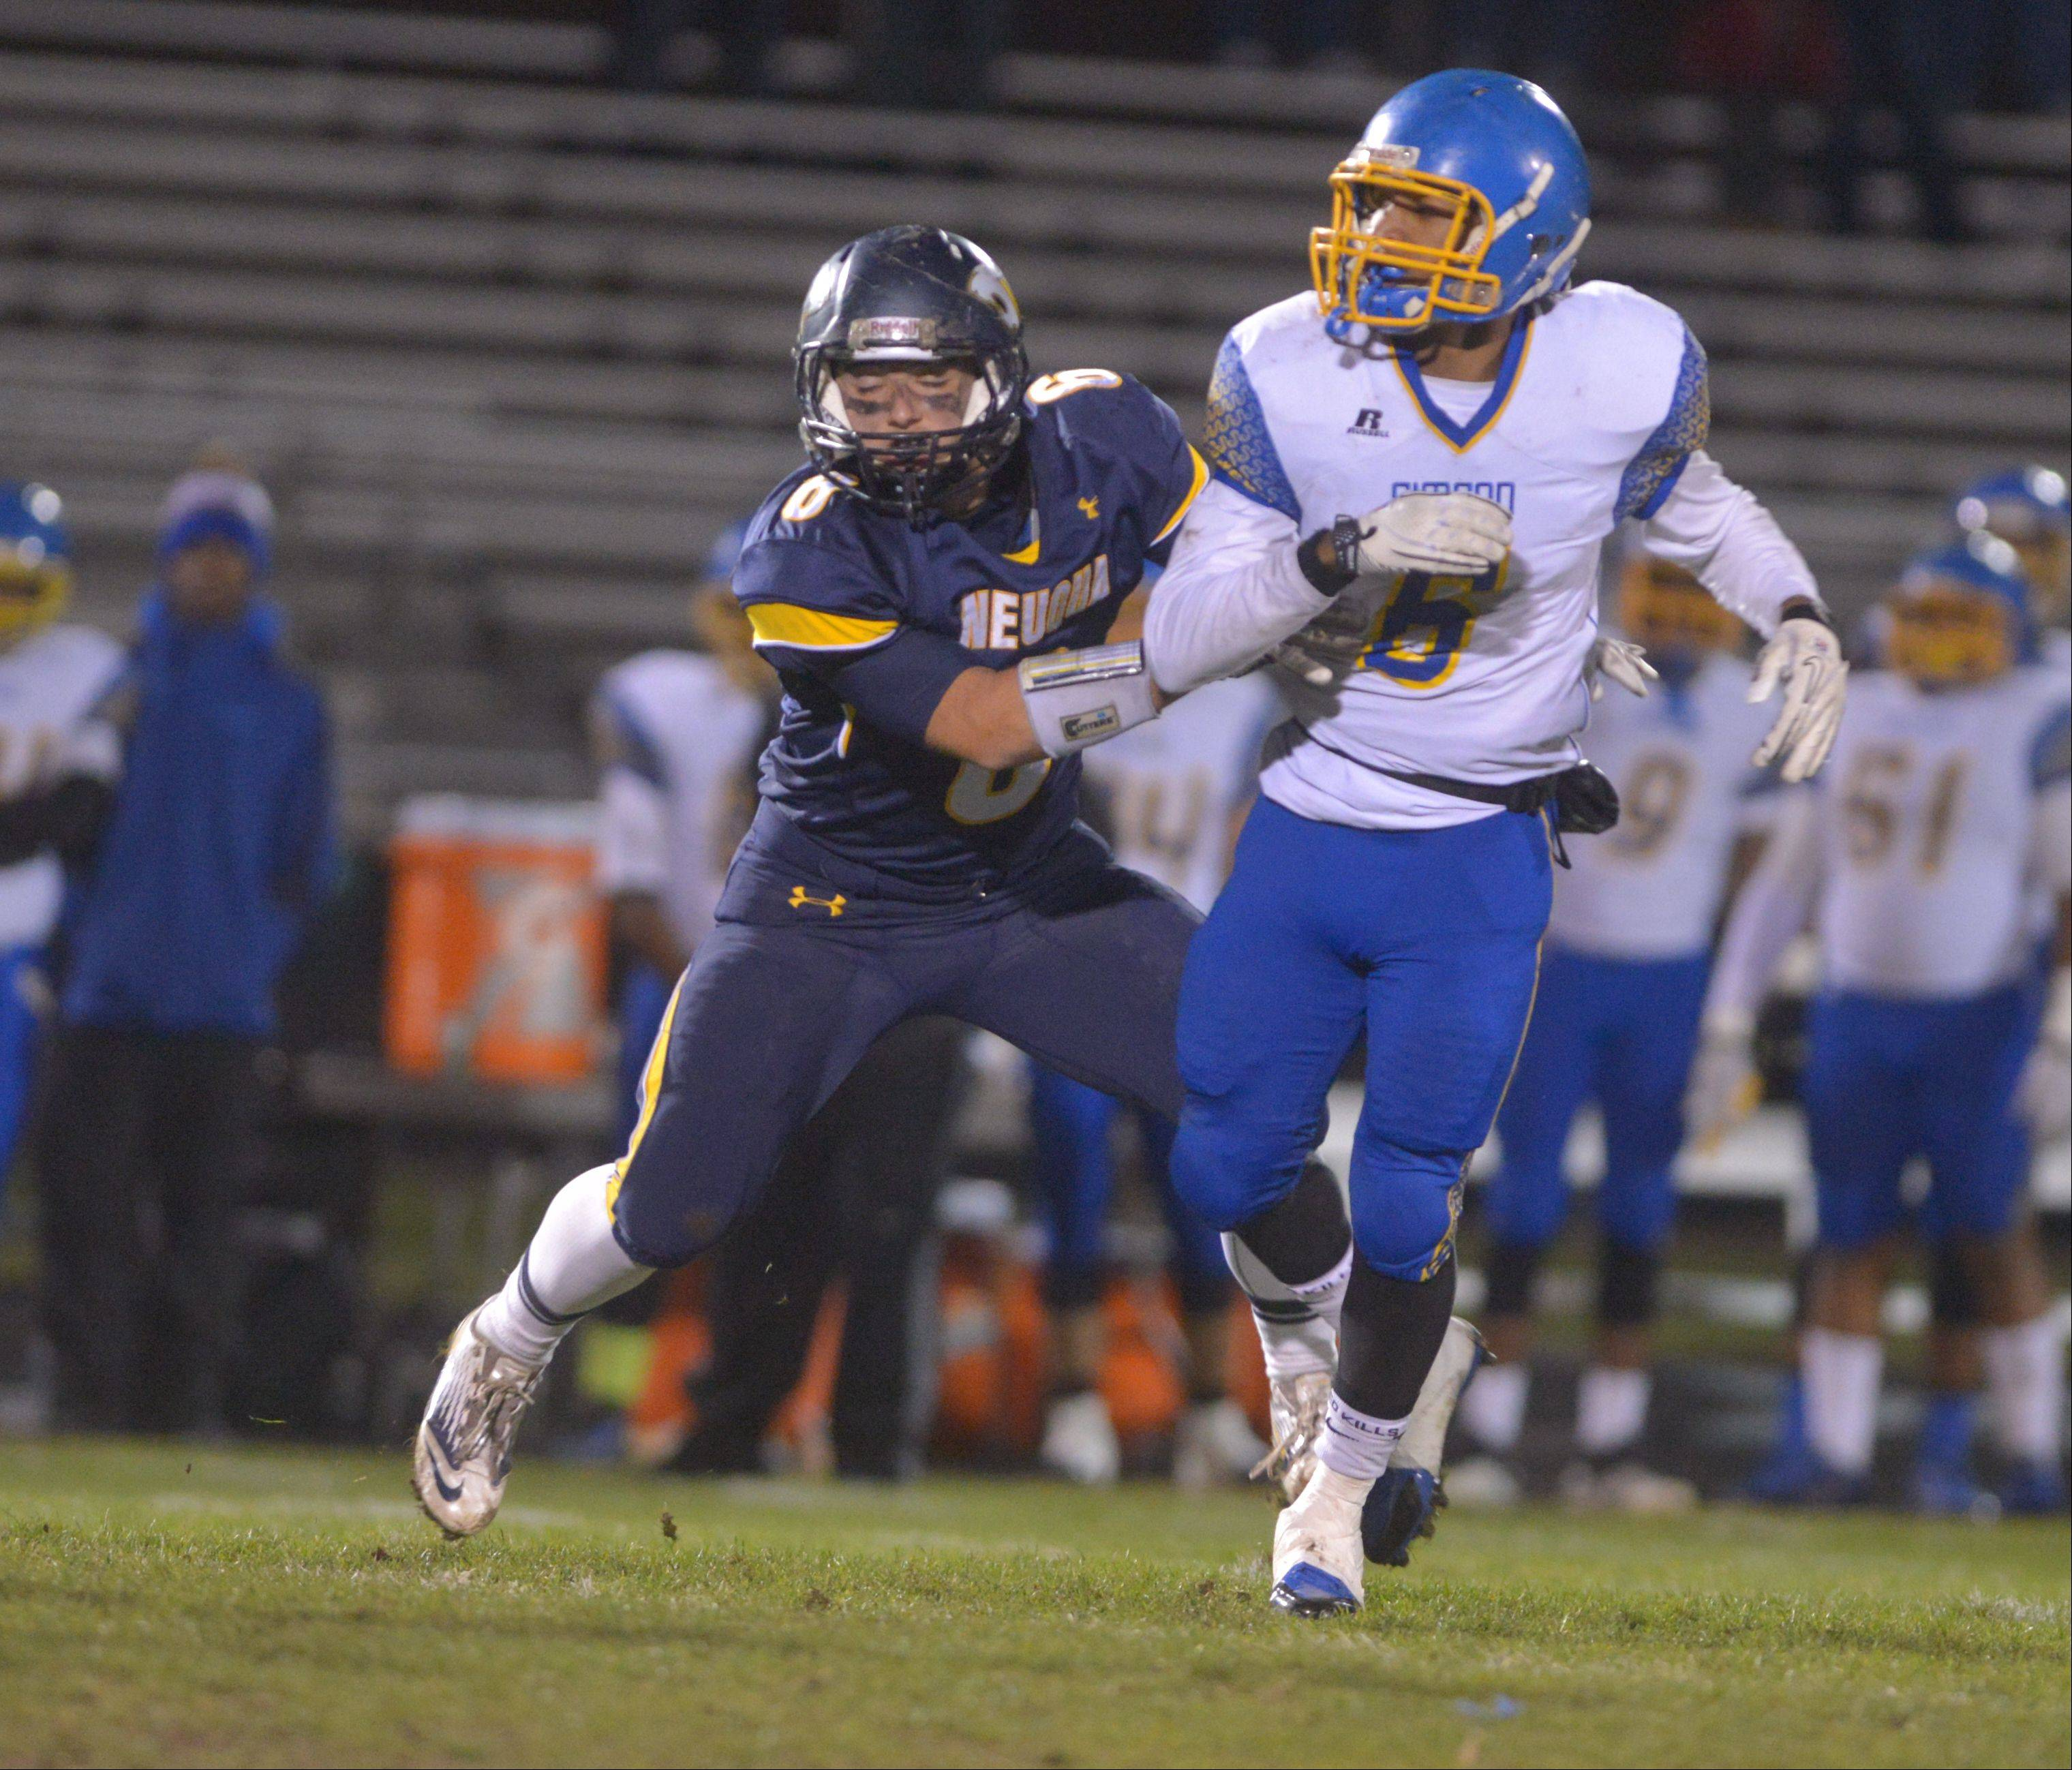 Playoffs -Round Two- Photos from the Simeon vs. Neuqua Valley football game in Naperville on Saturday, Nov. 9.